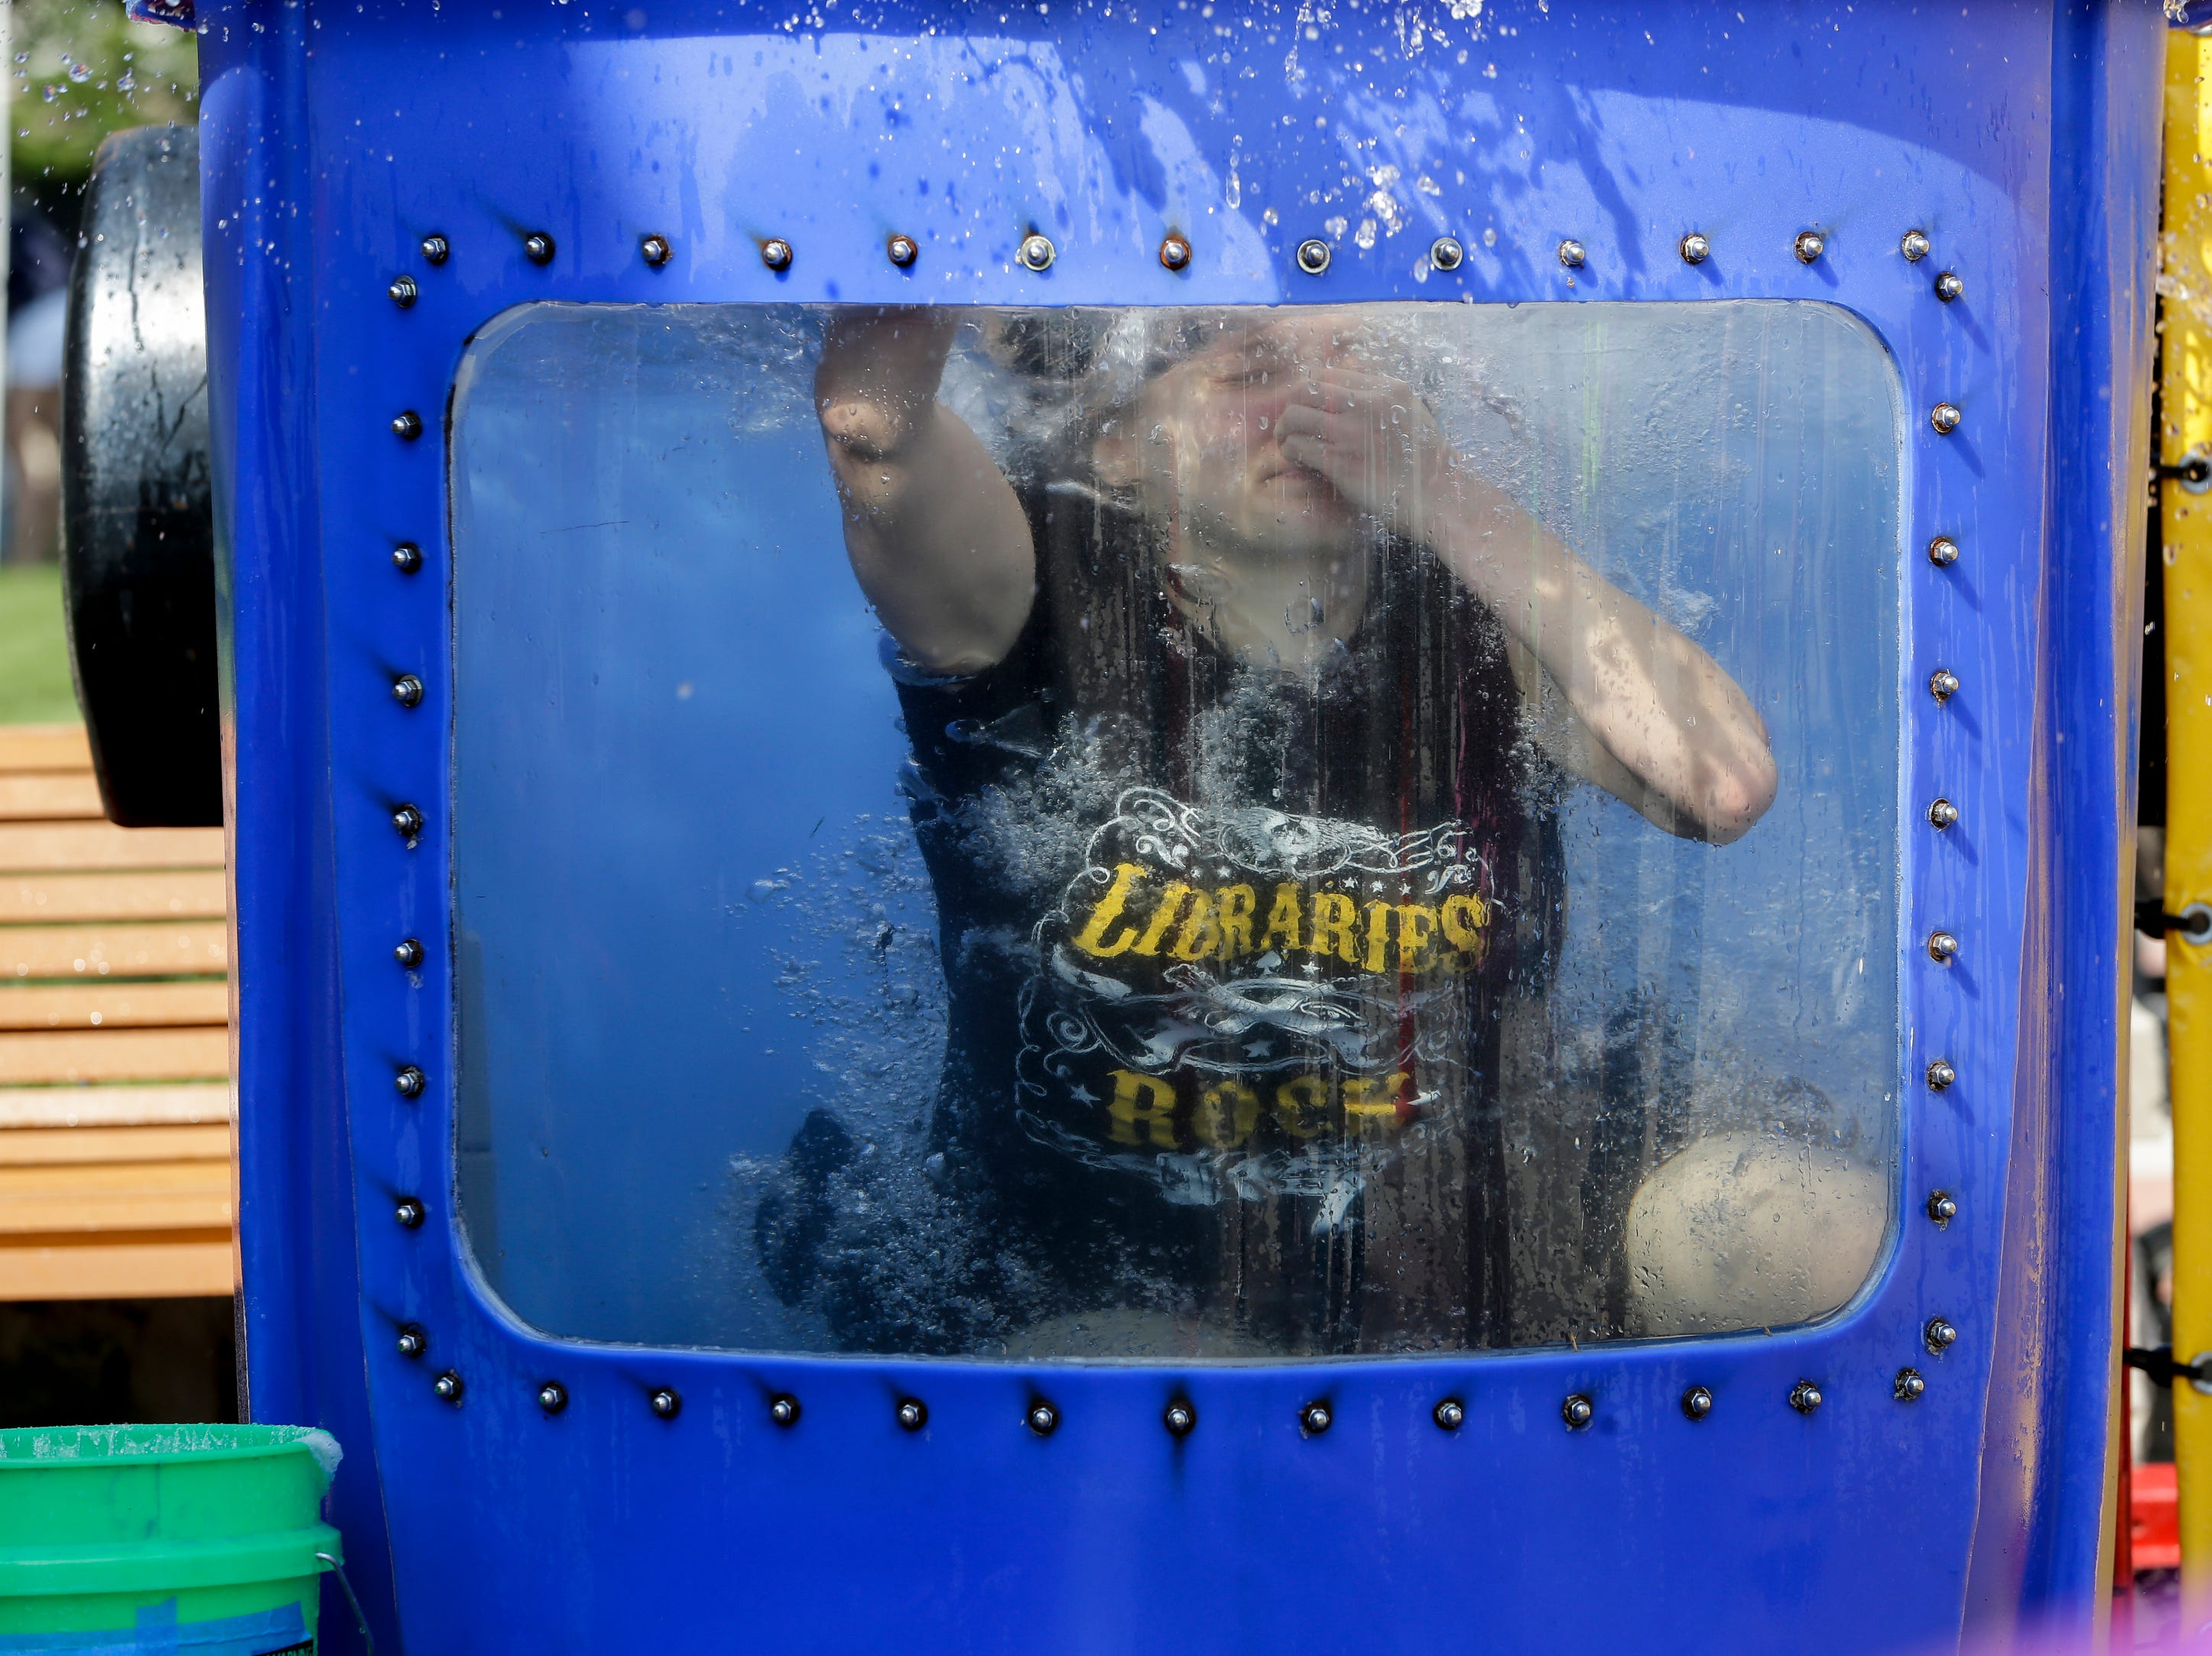 Library youth services manager Julia Lee goes under in the dunk tank at the library carnival Saturday, August 4, 2018, in Manitowoc, Wis. Josh Clark/USA TODAY NETWORK-Wisconsin